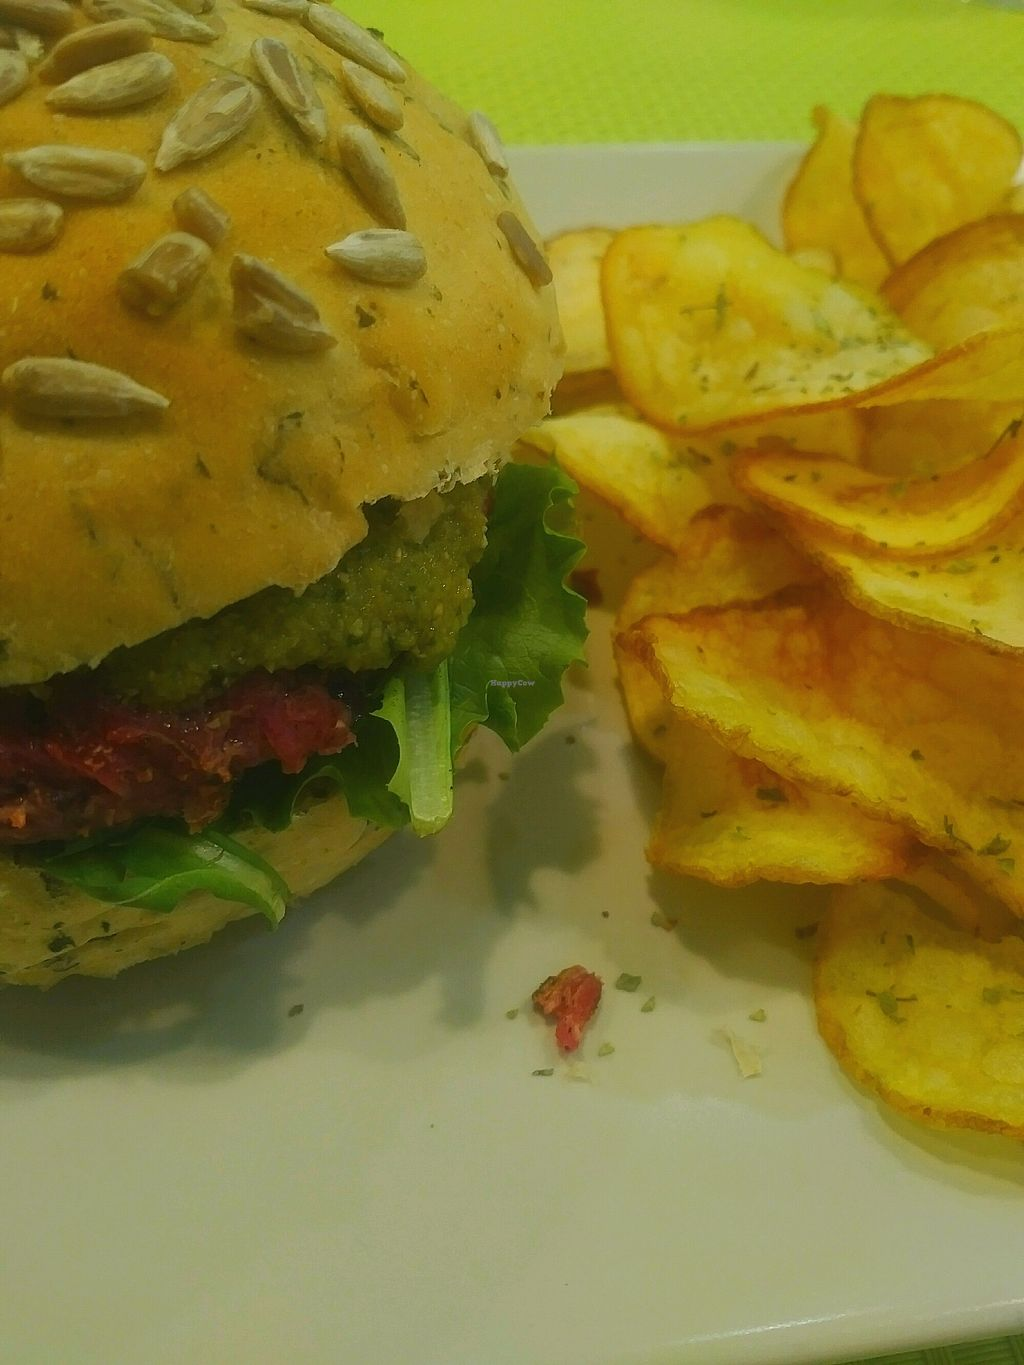 """Photo of Vegana Burgers - Cais do Sodre  by <a href=""""/members/profile/BrightNomad"""">BrightNomad</a> <br/>vegana <br/> October 23, 2017  - <a href='/contact/abuse/image/84623/318093'>Report</a>"""